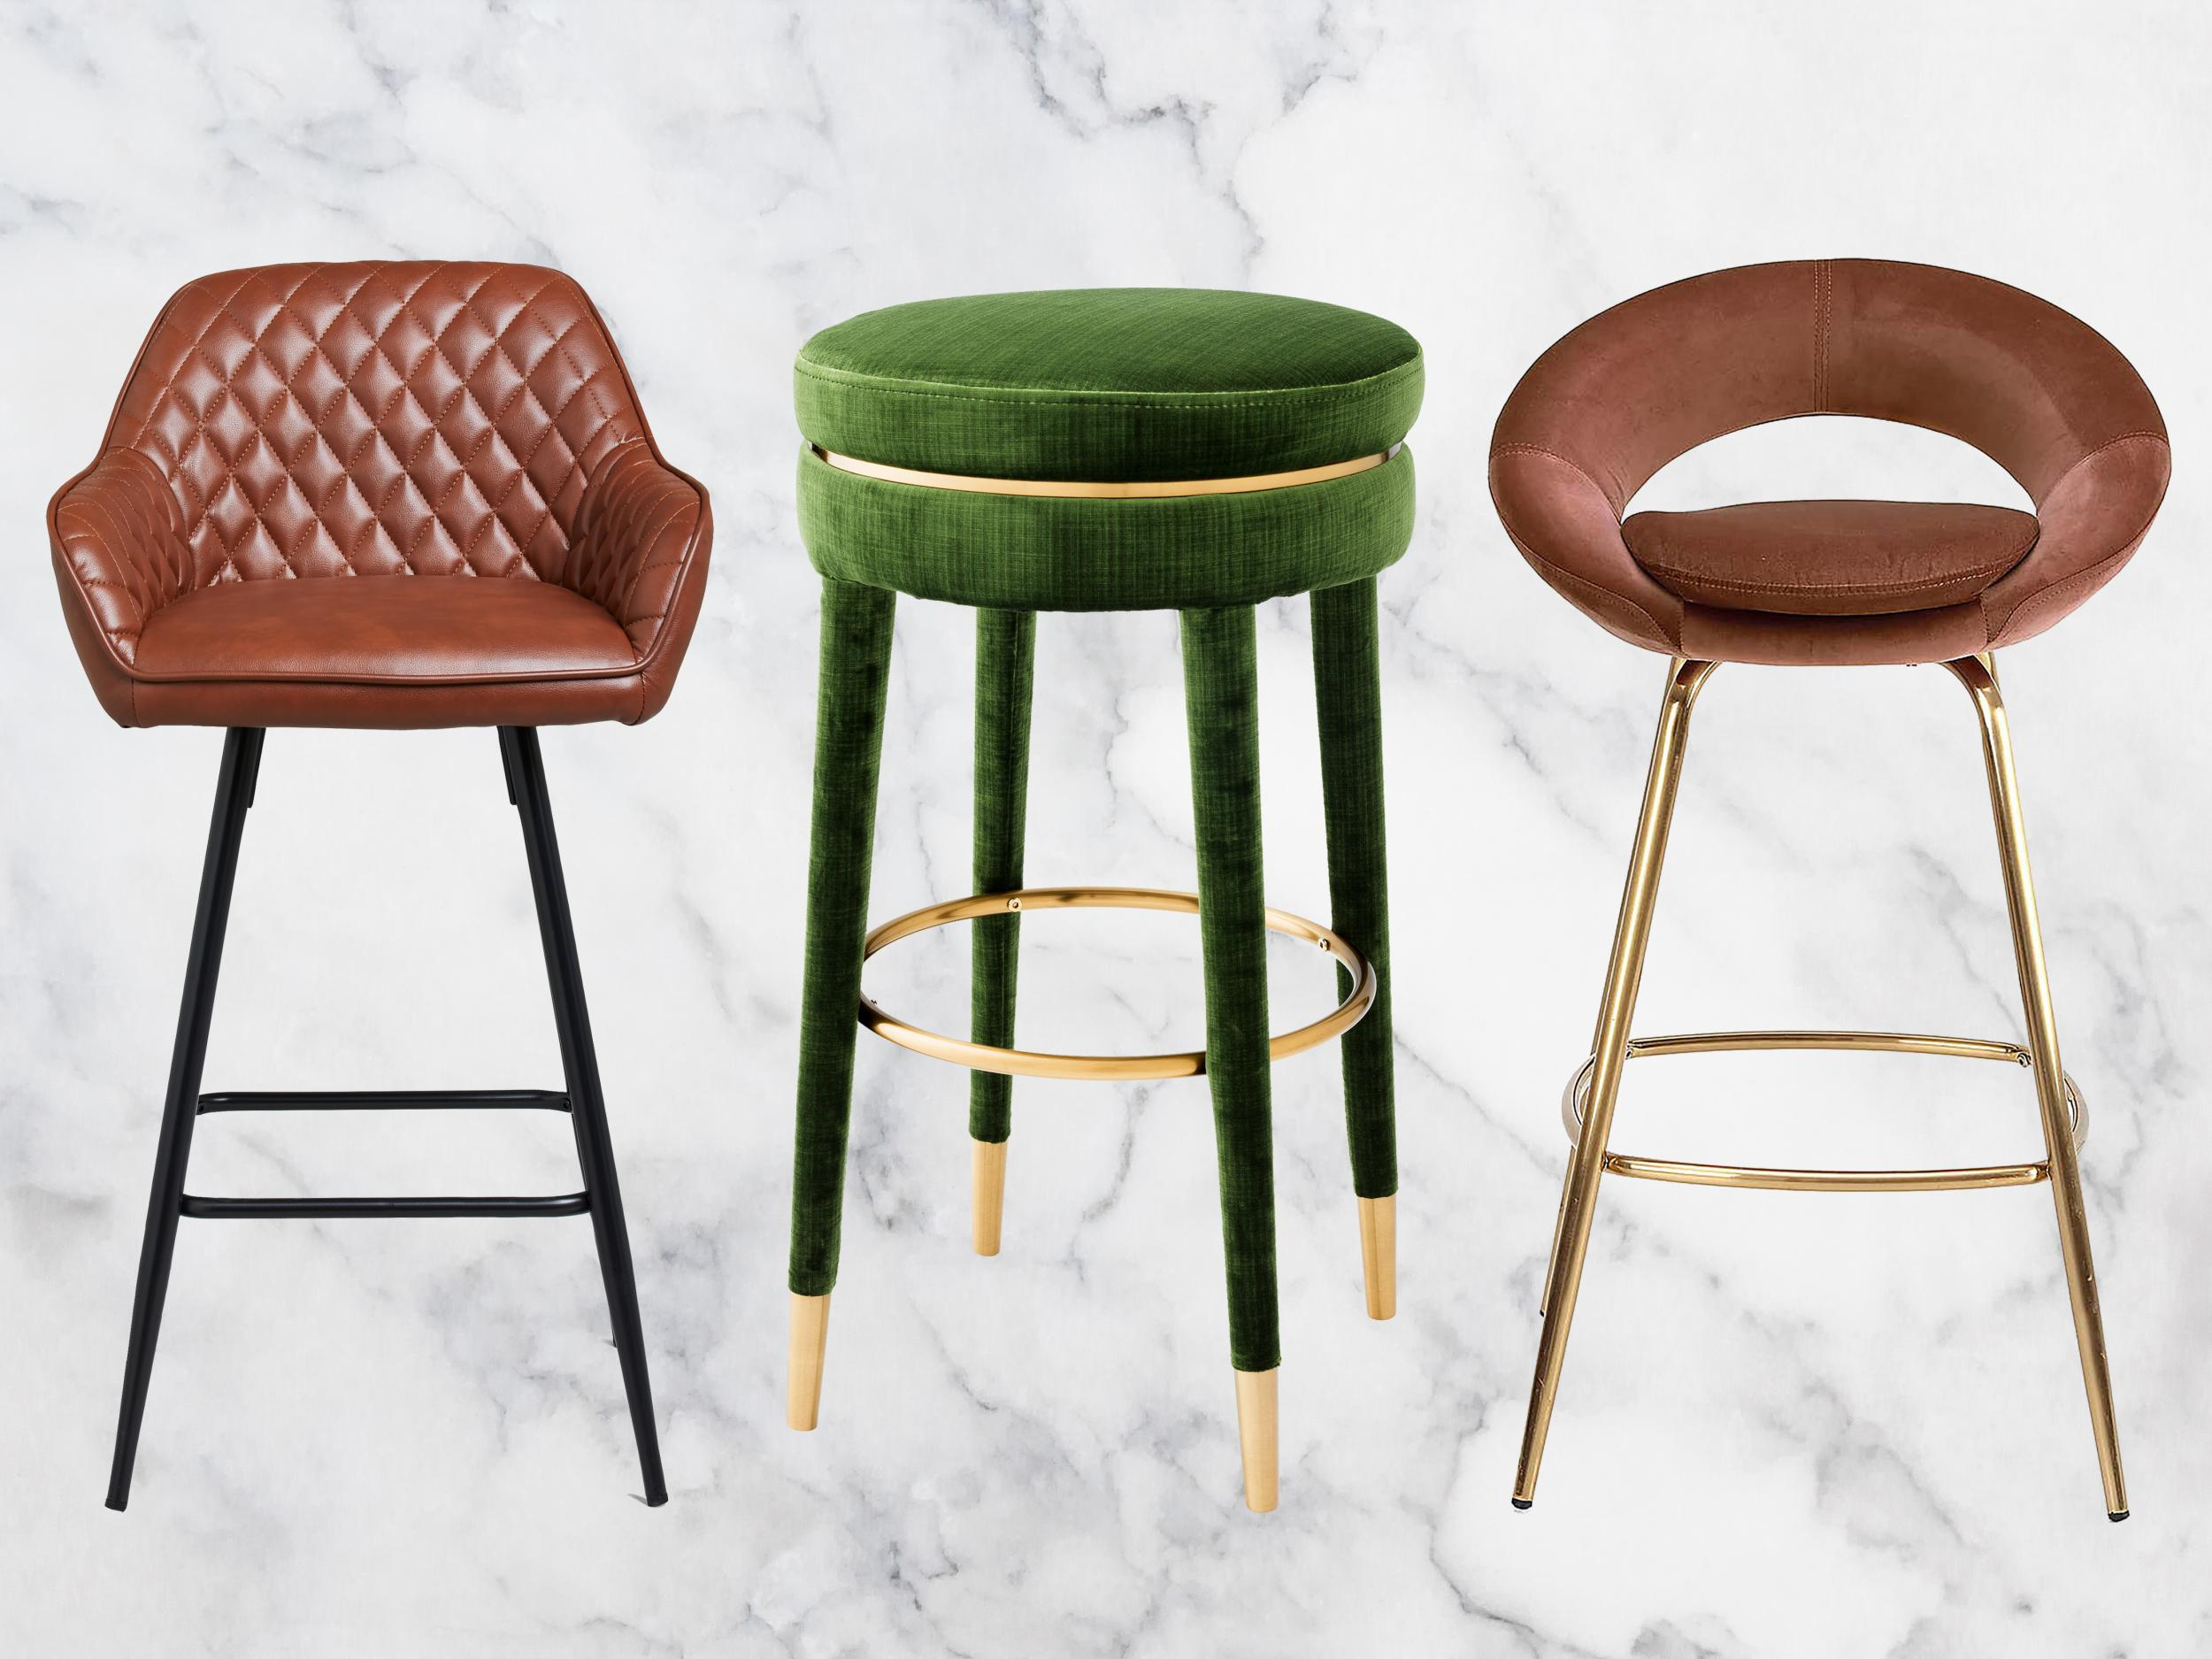 Best Bar Stools For Your Kitchen Island Or Breakfast Bar | The Independent